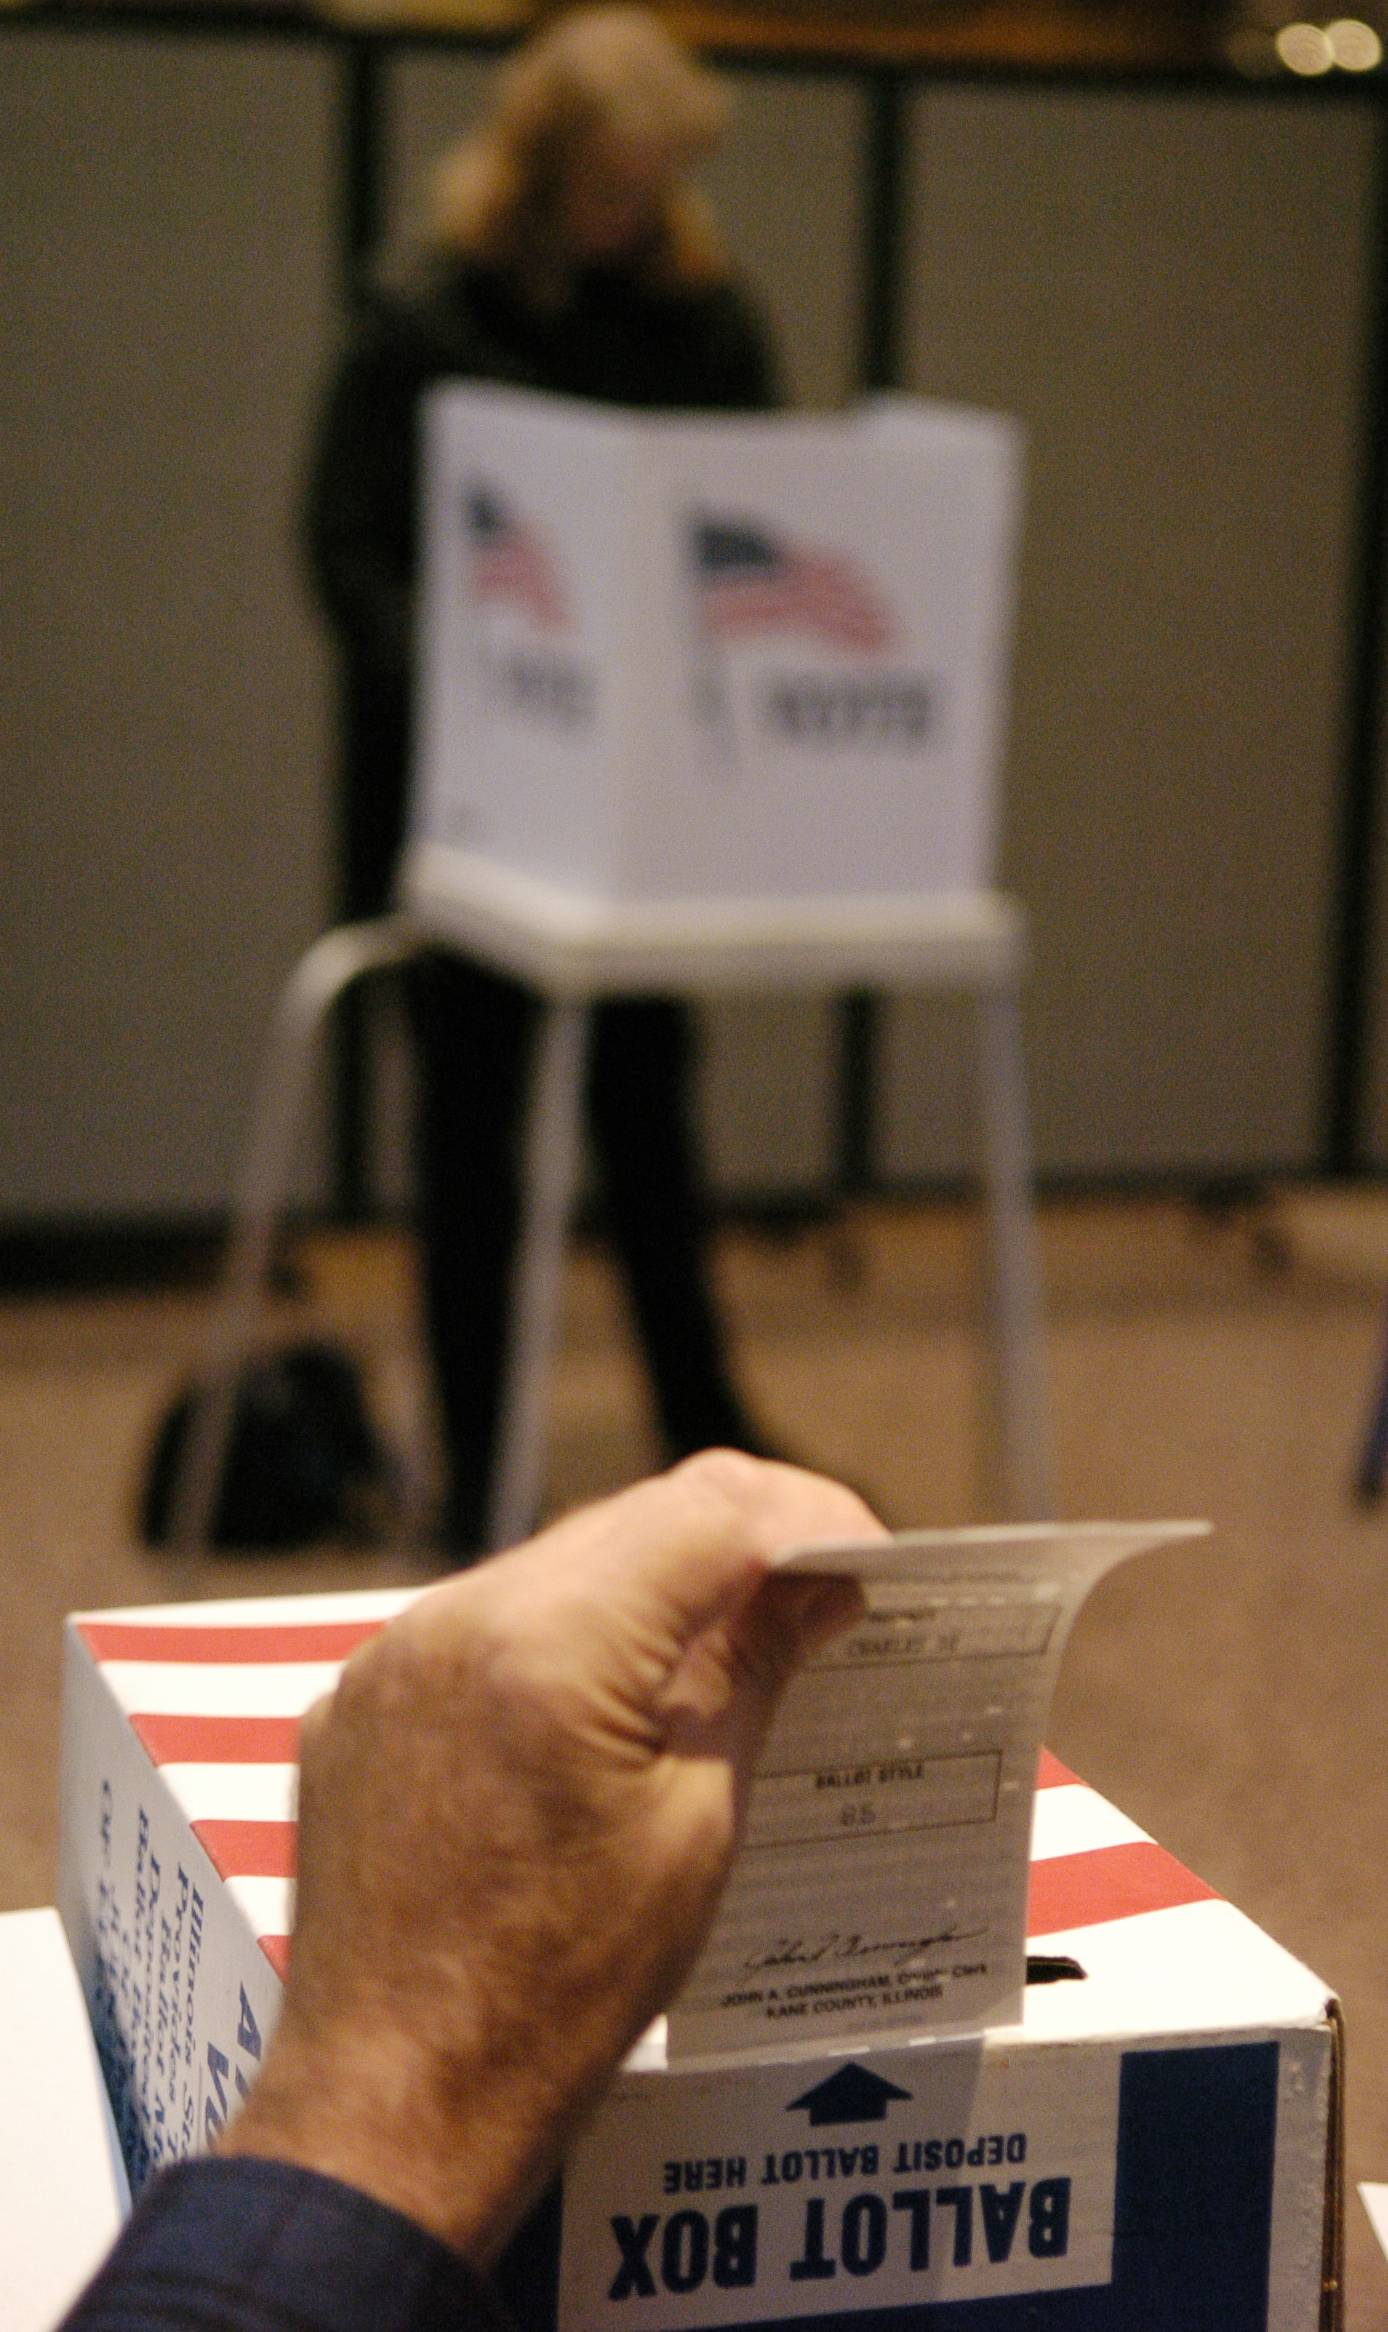 Voters choices today will decide who's on the November ballot in races across the suburbs and Illinois.